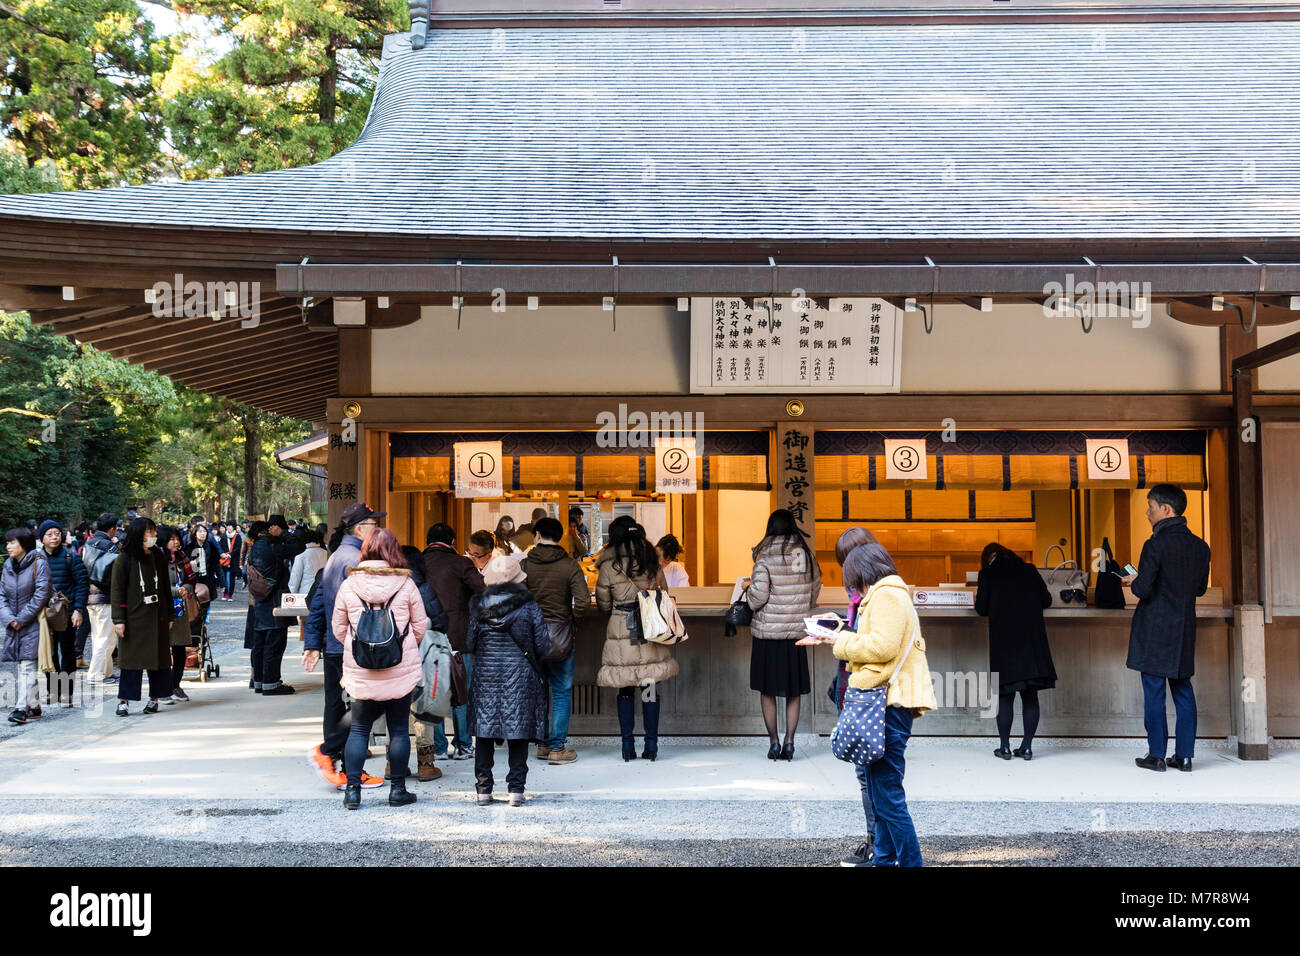 Japan, Ise, Ise-jingu Geku, Outer Shrine. People buying good luck charms from wooden shrine office. - Stock Image